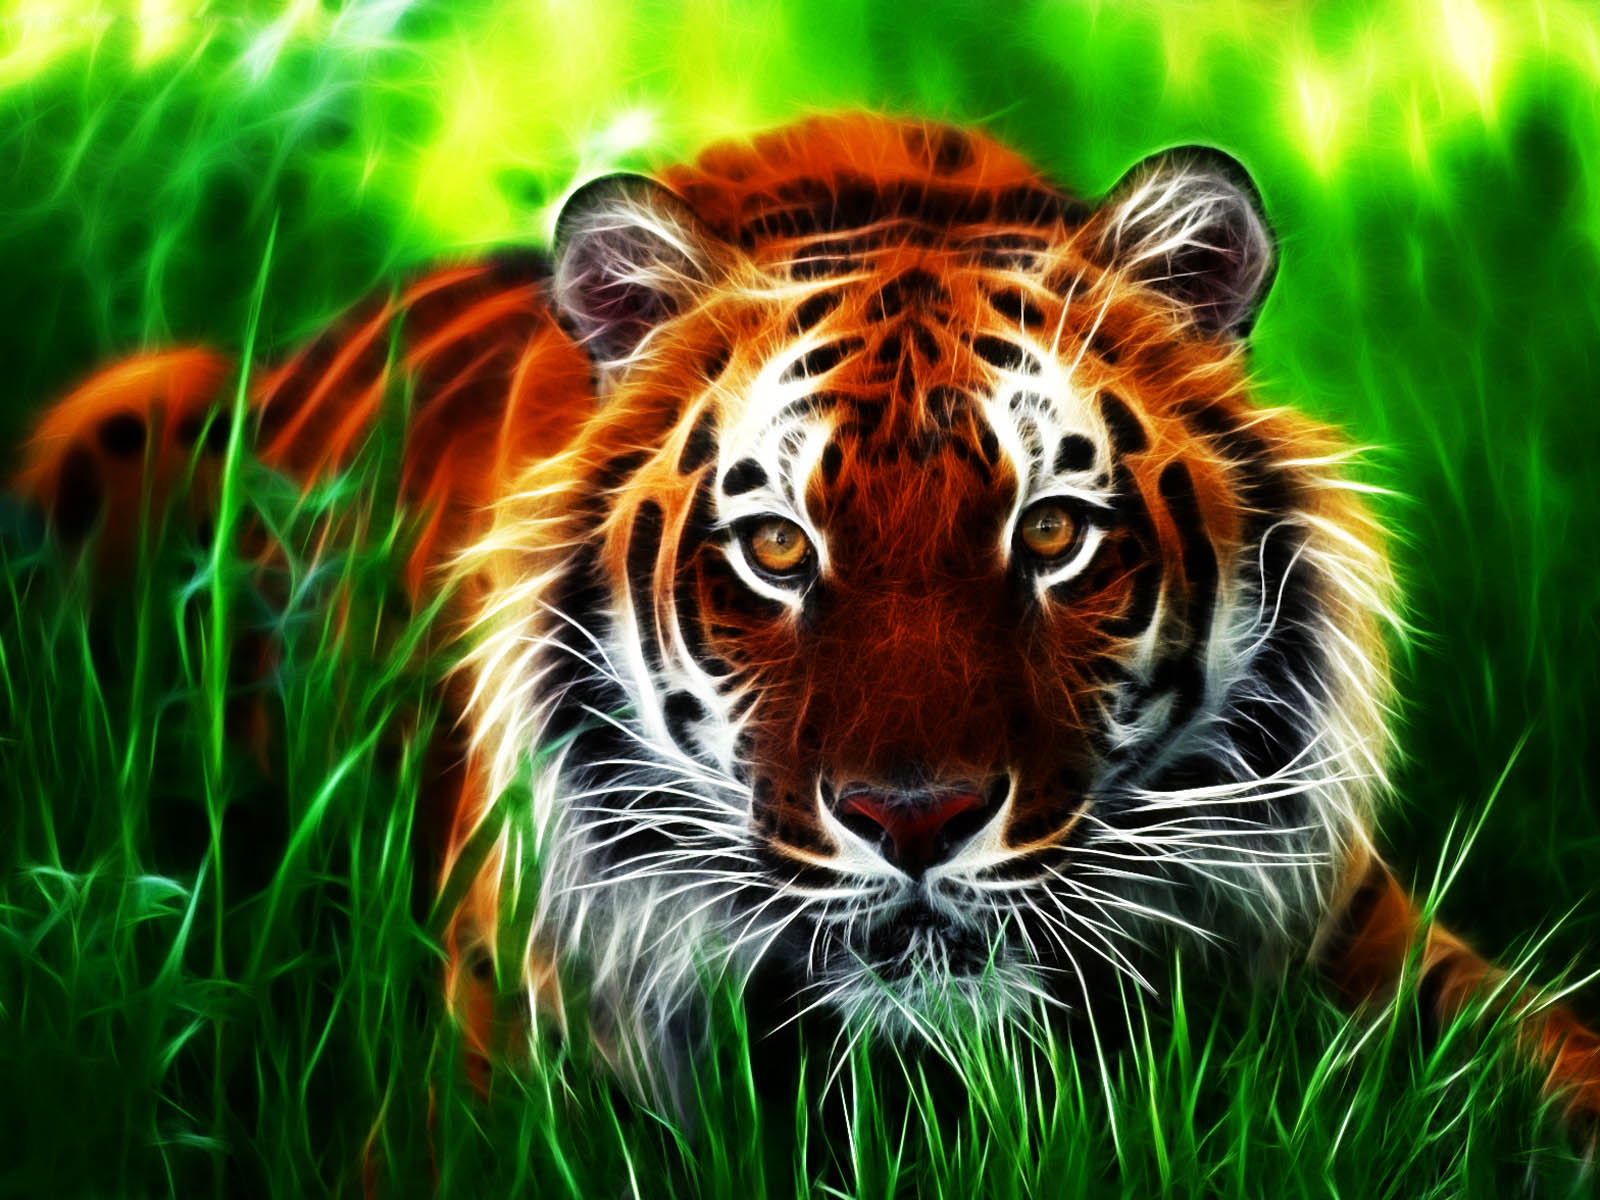 tag: tiger 3d wallpapers, images, photos, pictures and backgrounds